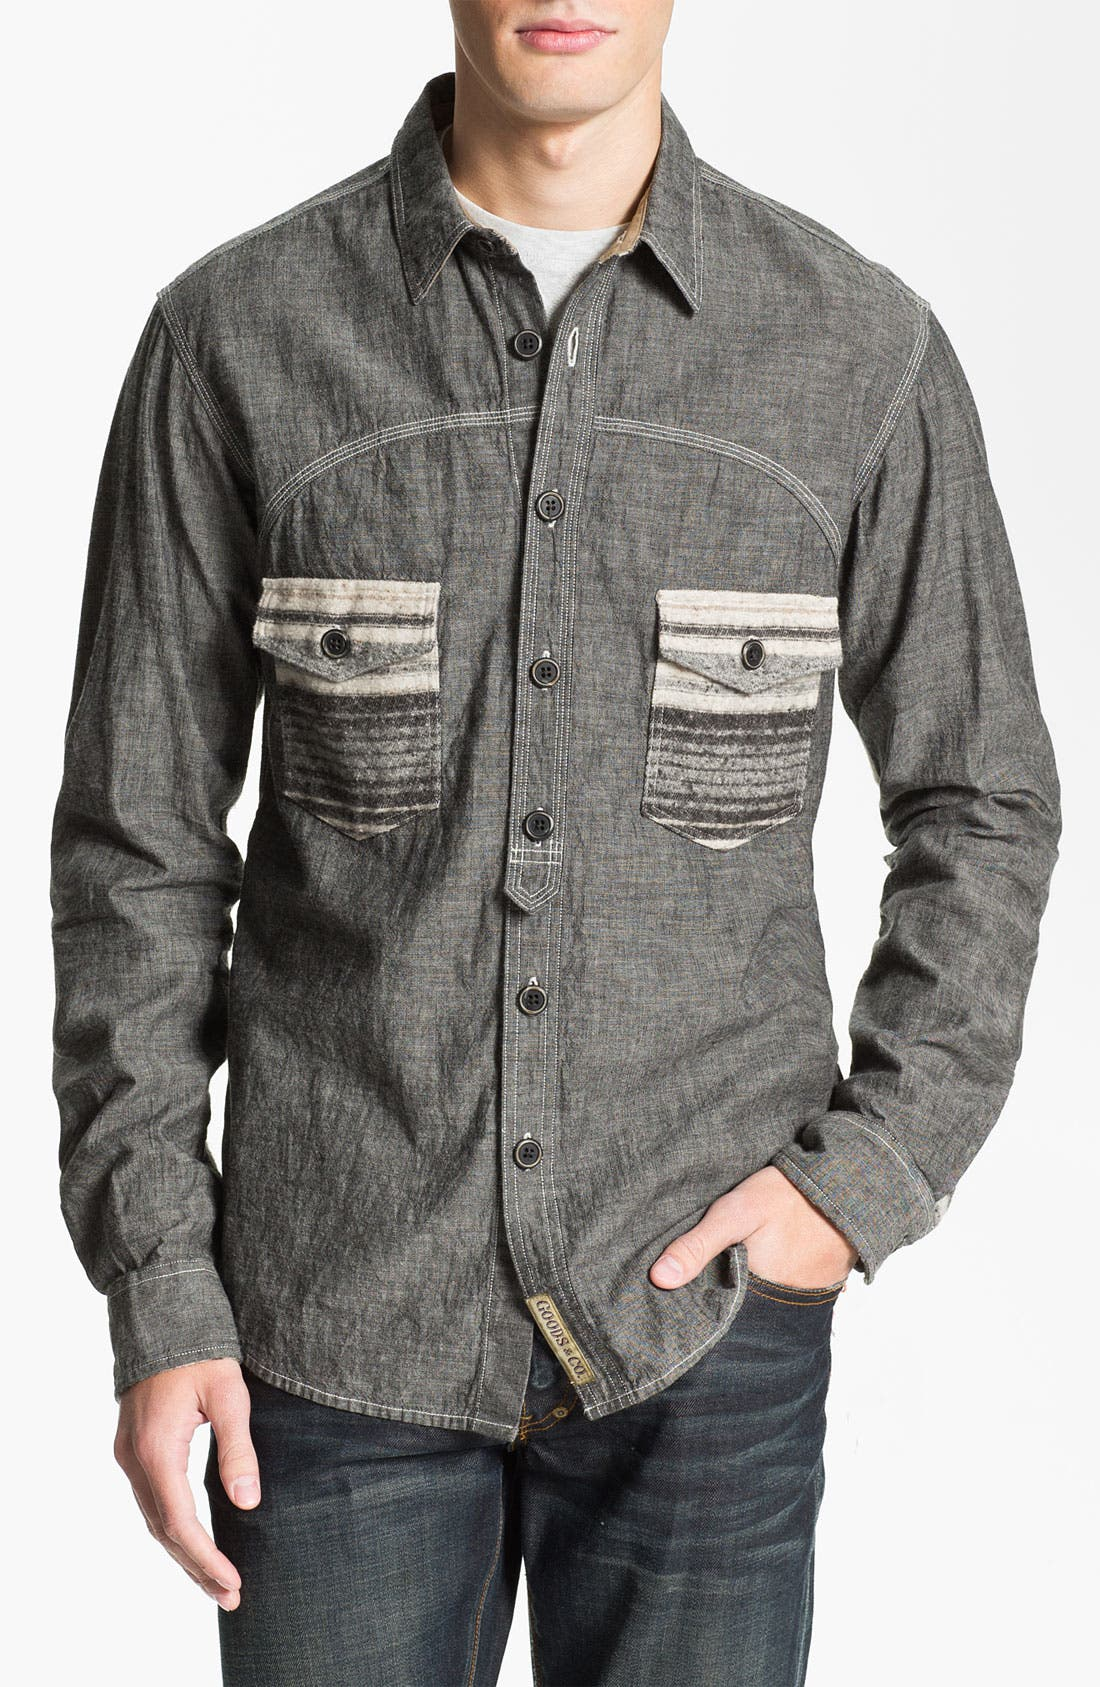 Alternate Image 1 Selected - PRPS 'Naval' Woven Shirt